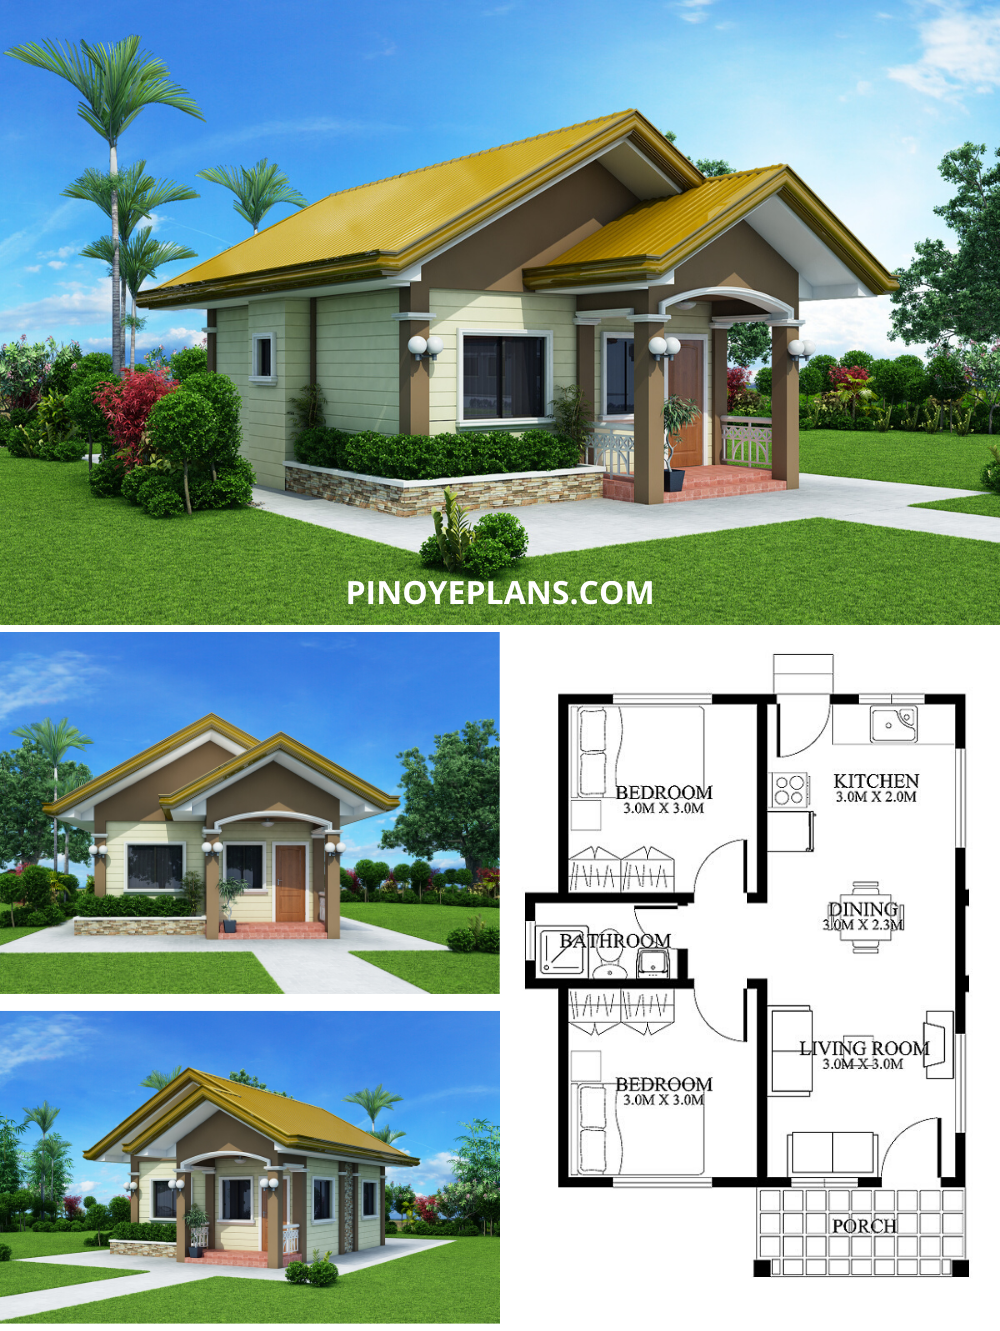 Small House Designs Shd 2012001 Pinoy Eplans Small House Design Philippines House Design Small House Model